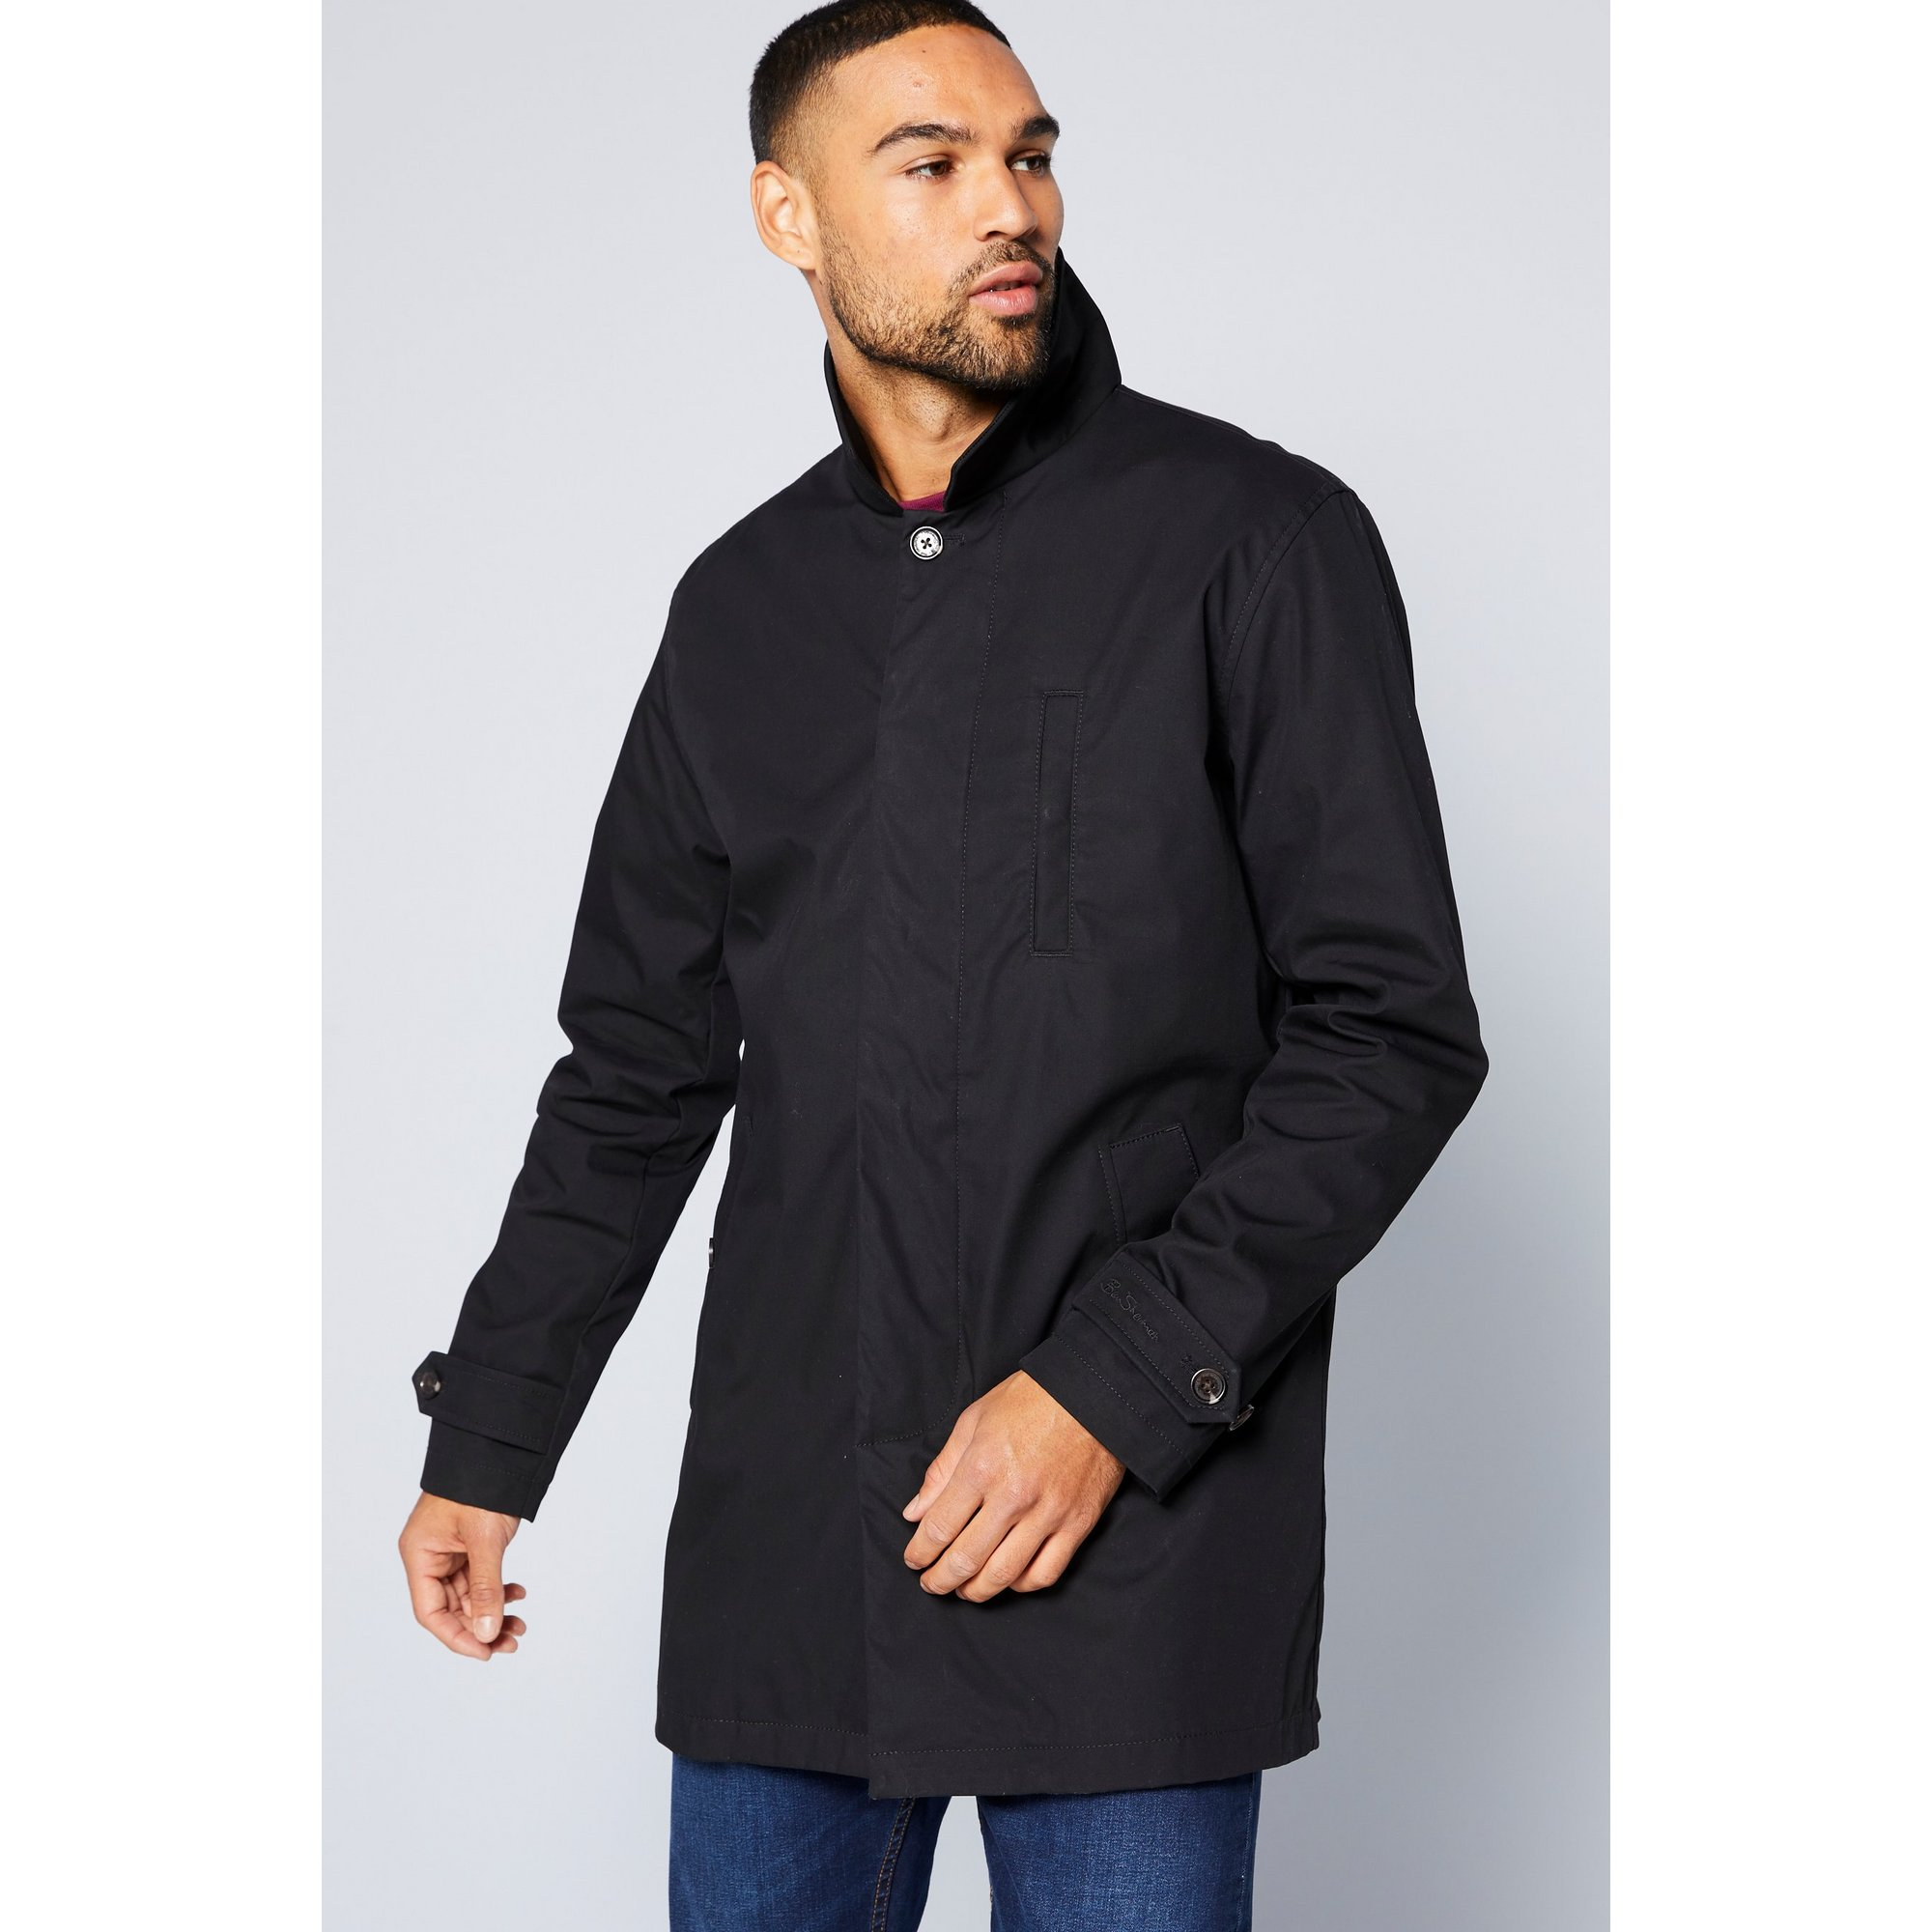 Image of Ben Sherman Black Mac Jacket